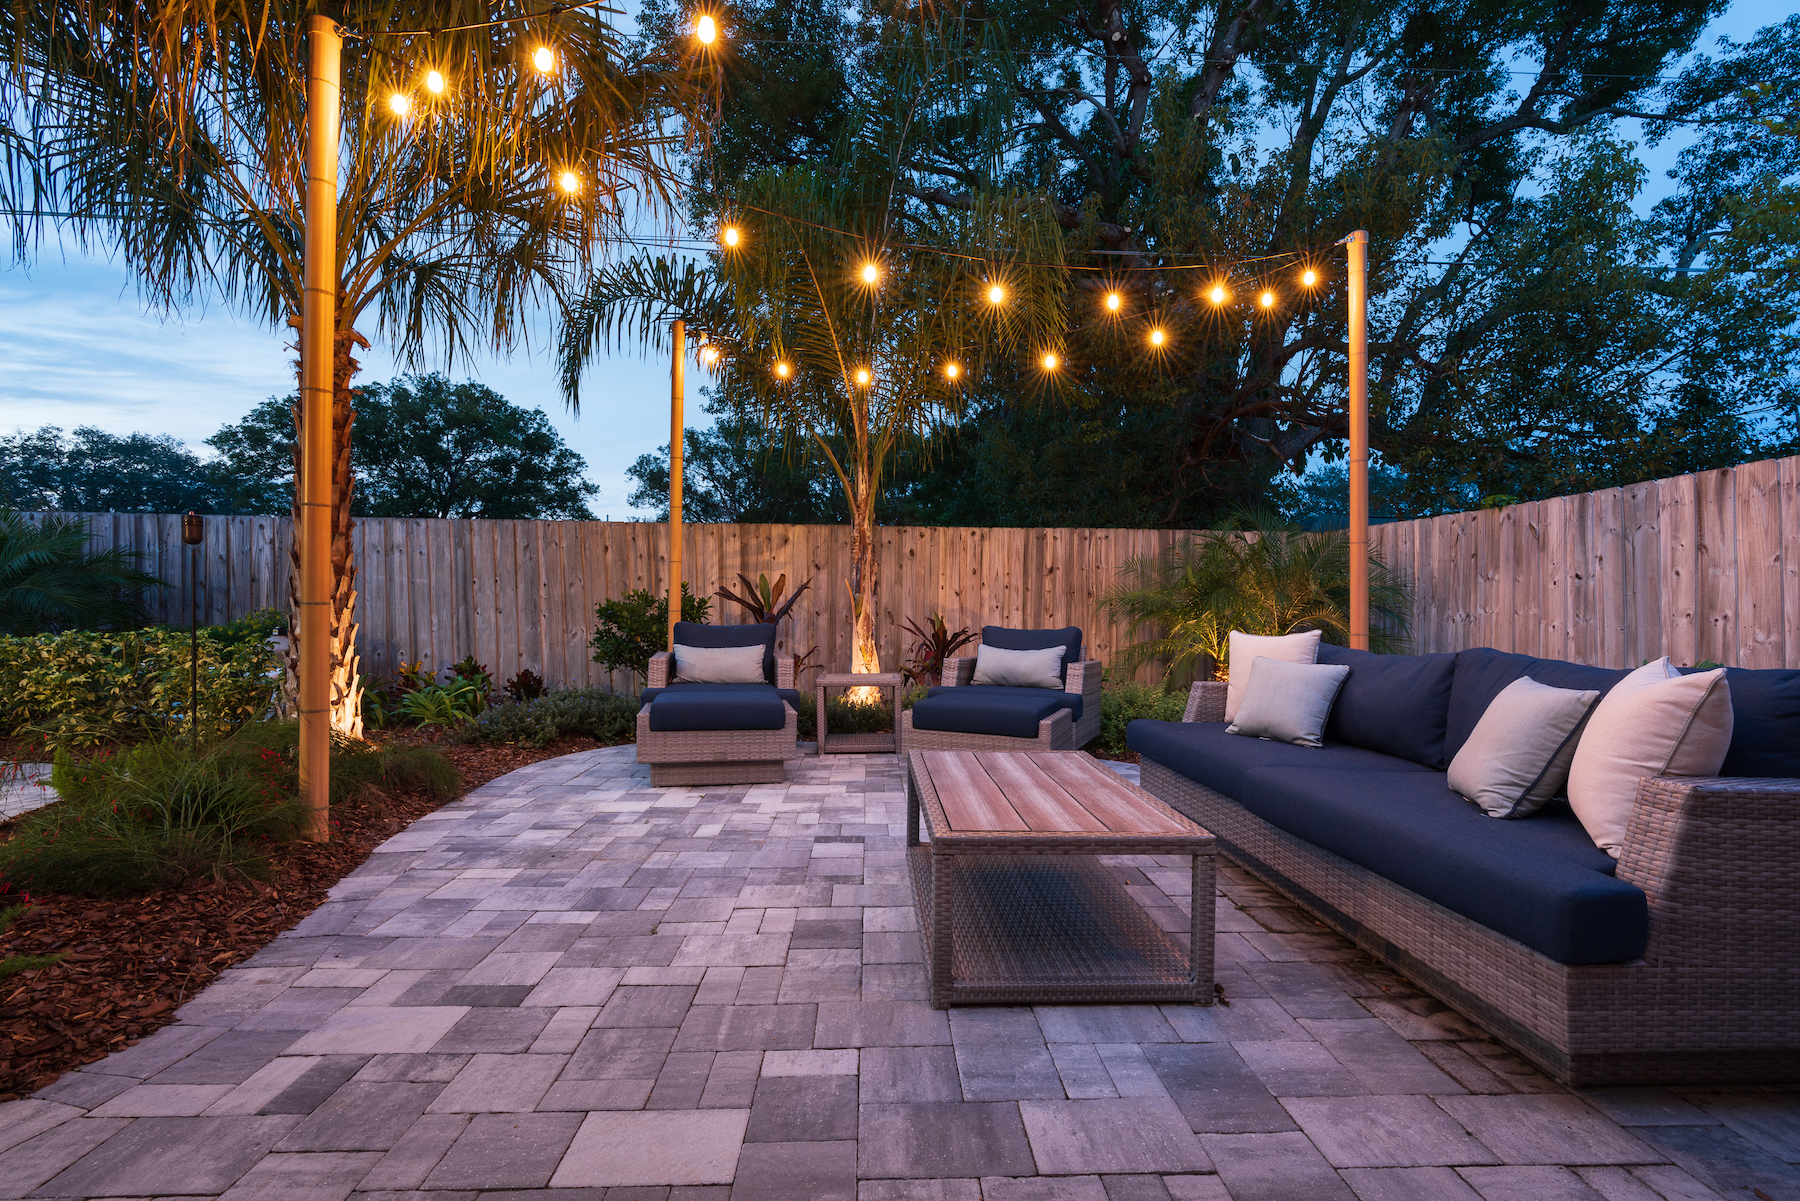 Lounging area with festive lights and paver patio